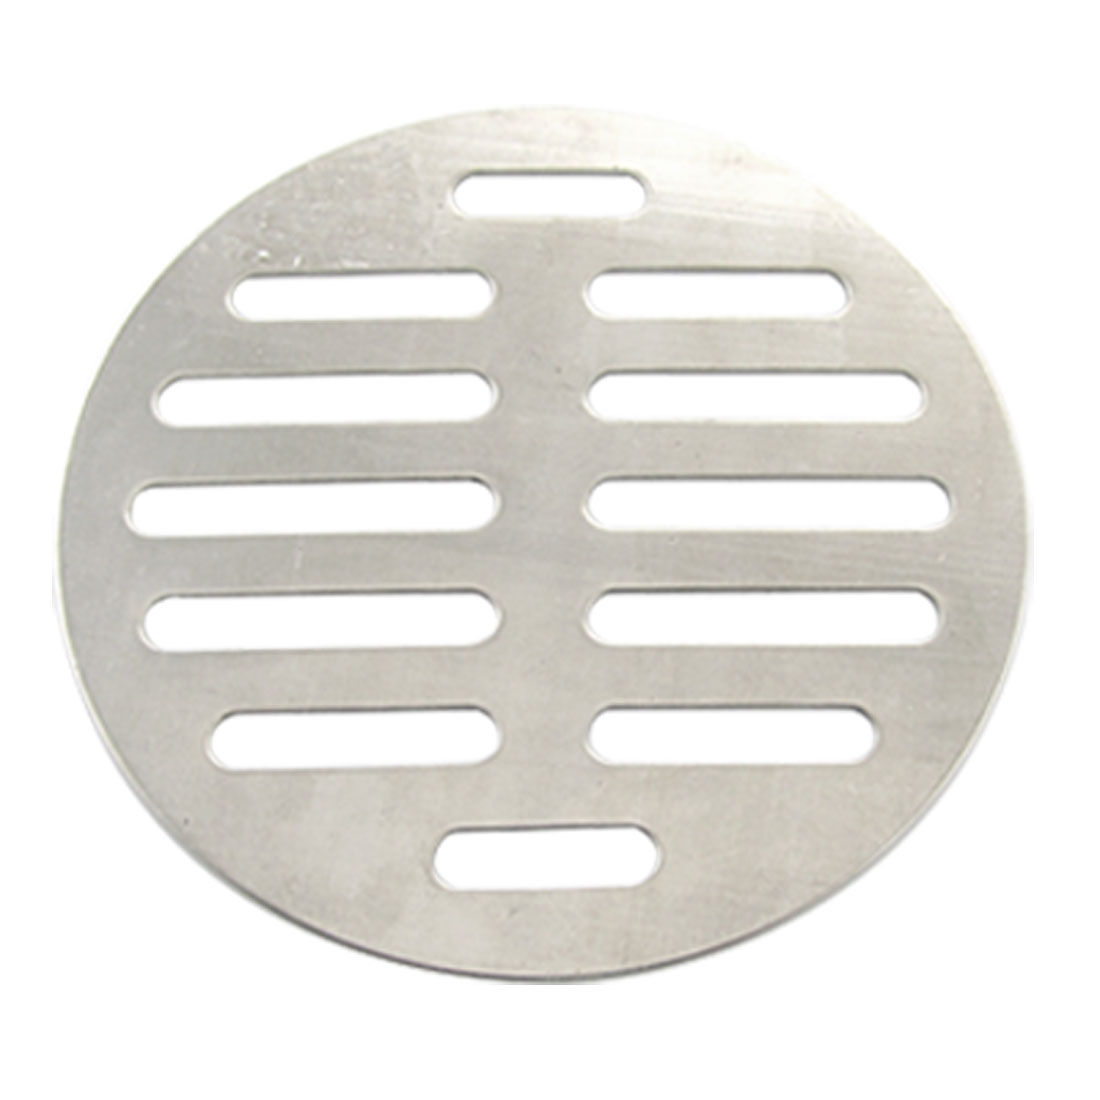 Bathroom Silver Tone Stainless Steel Floor Drain Cover